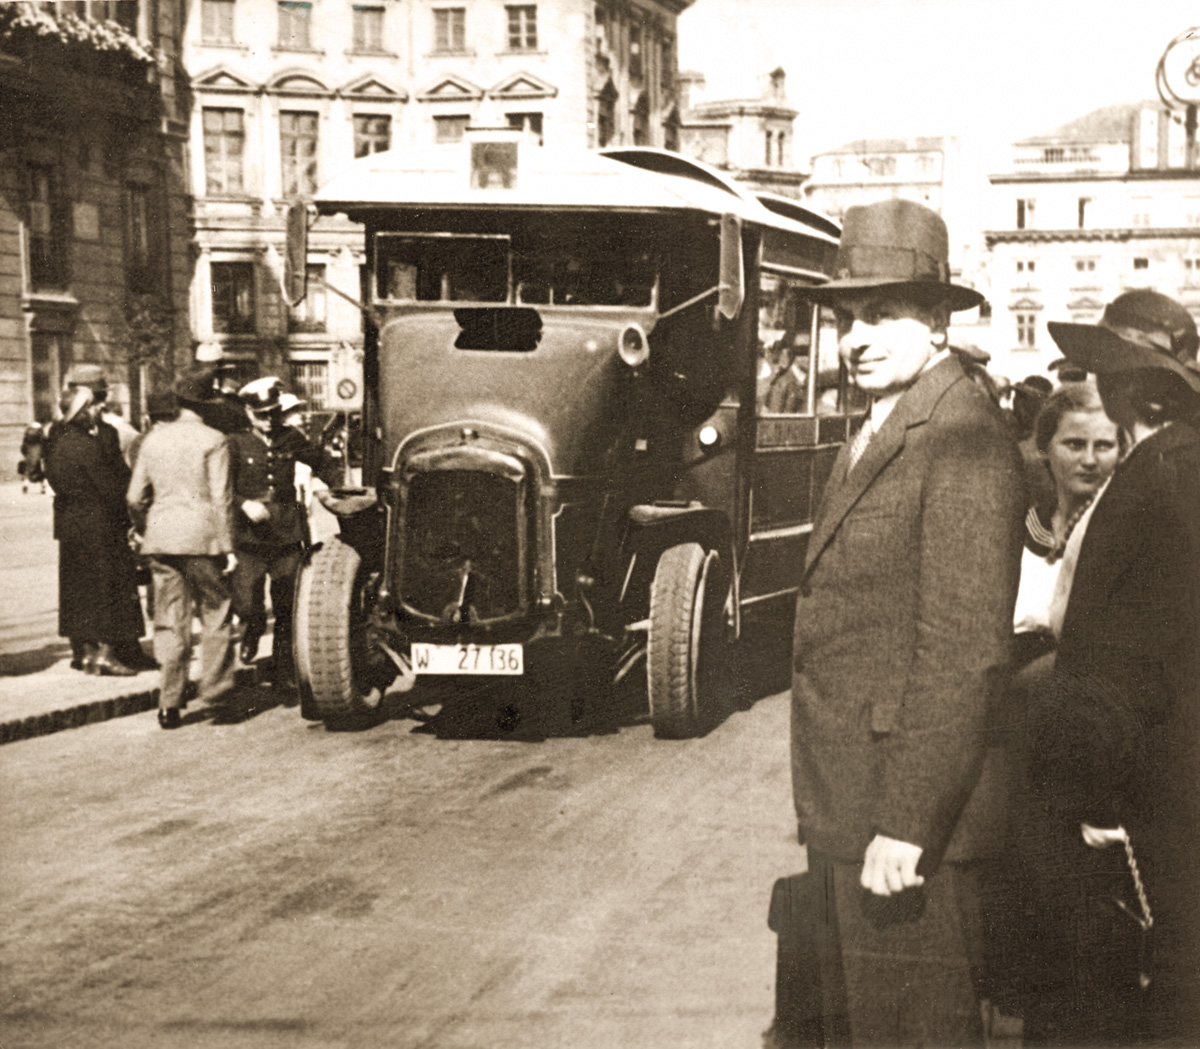 """A photograph from the album """"Warszawskie autobusy. Najpiękniejsze fotografie"""" of the Wydawnictwo RM publishing company. The Somua brand bus at the initial stop of the A line, on Teatralny square, 1932, from the collection of Dariusz Walczak, photo: courtesy of Wydawnictwo RM"""